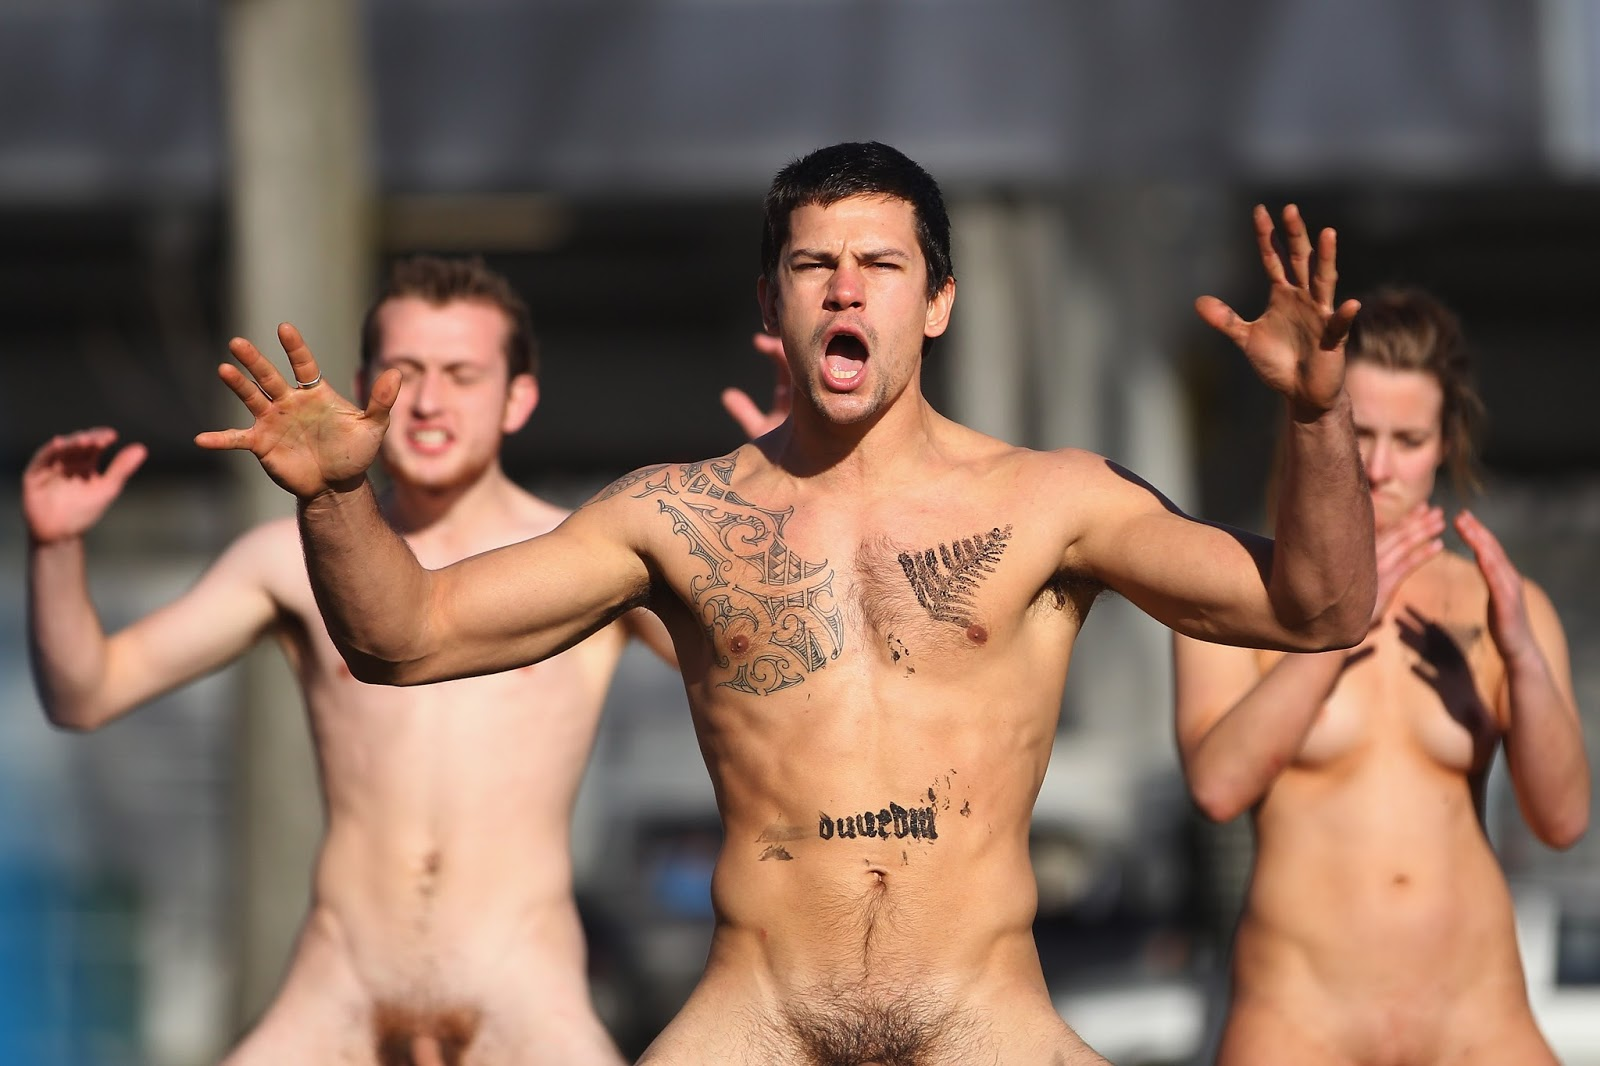 Anyone up for some nude beach rugby